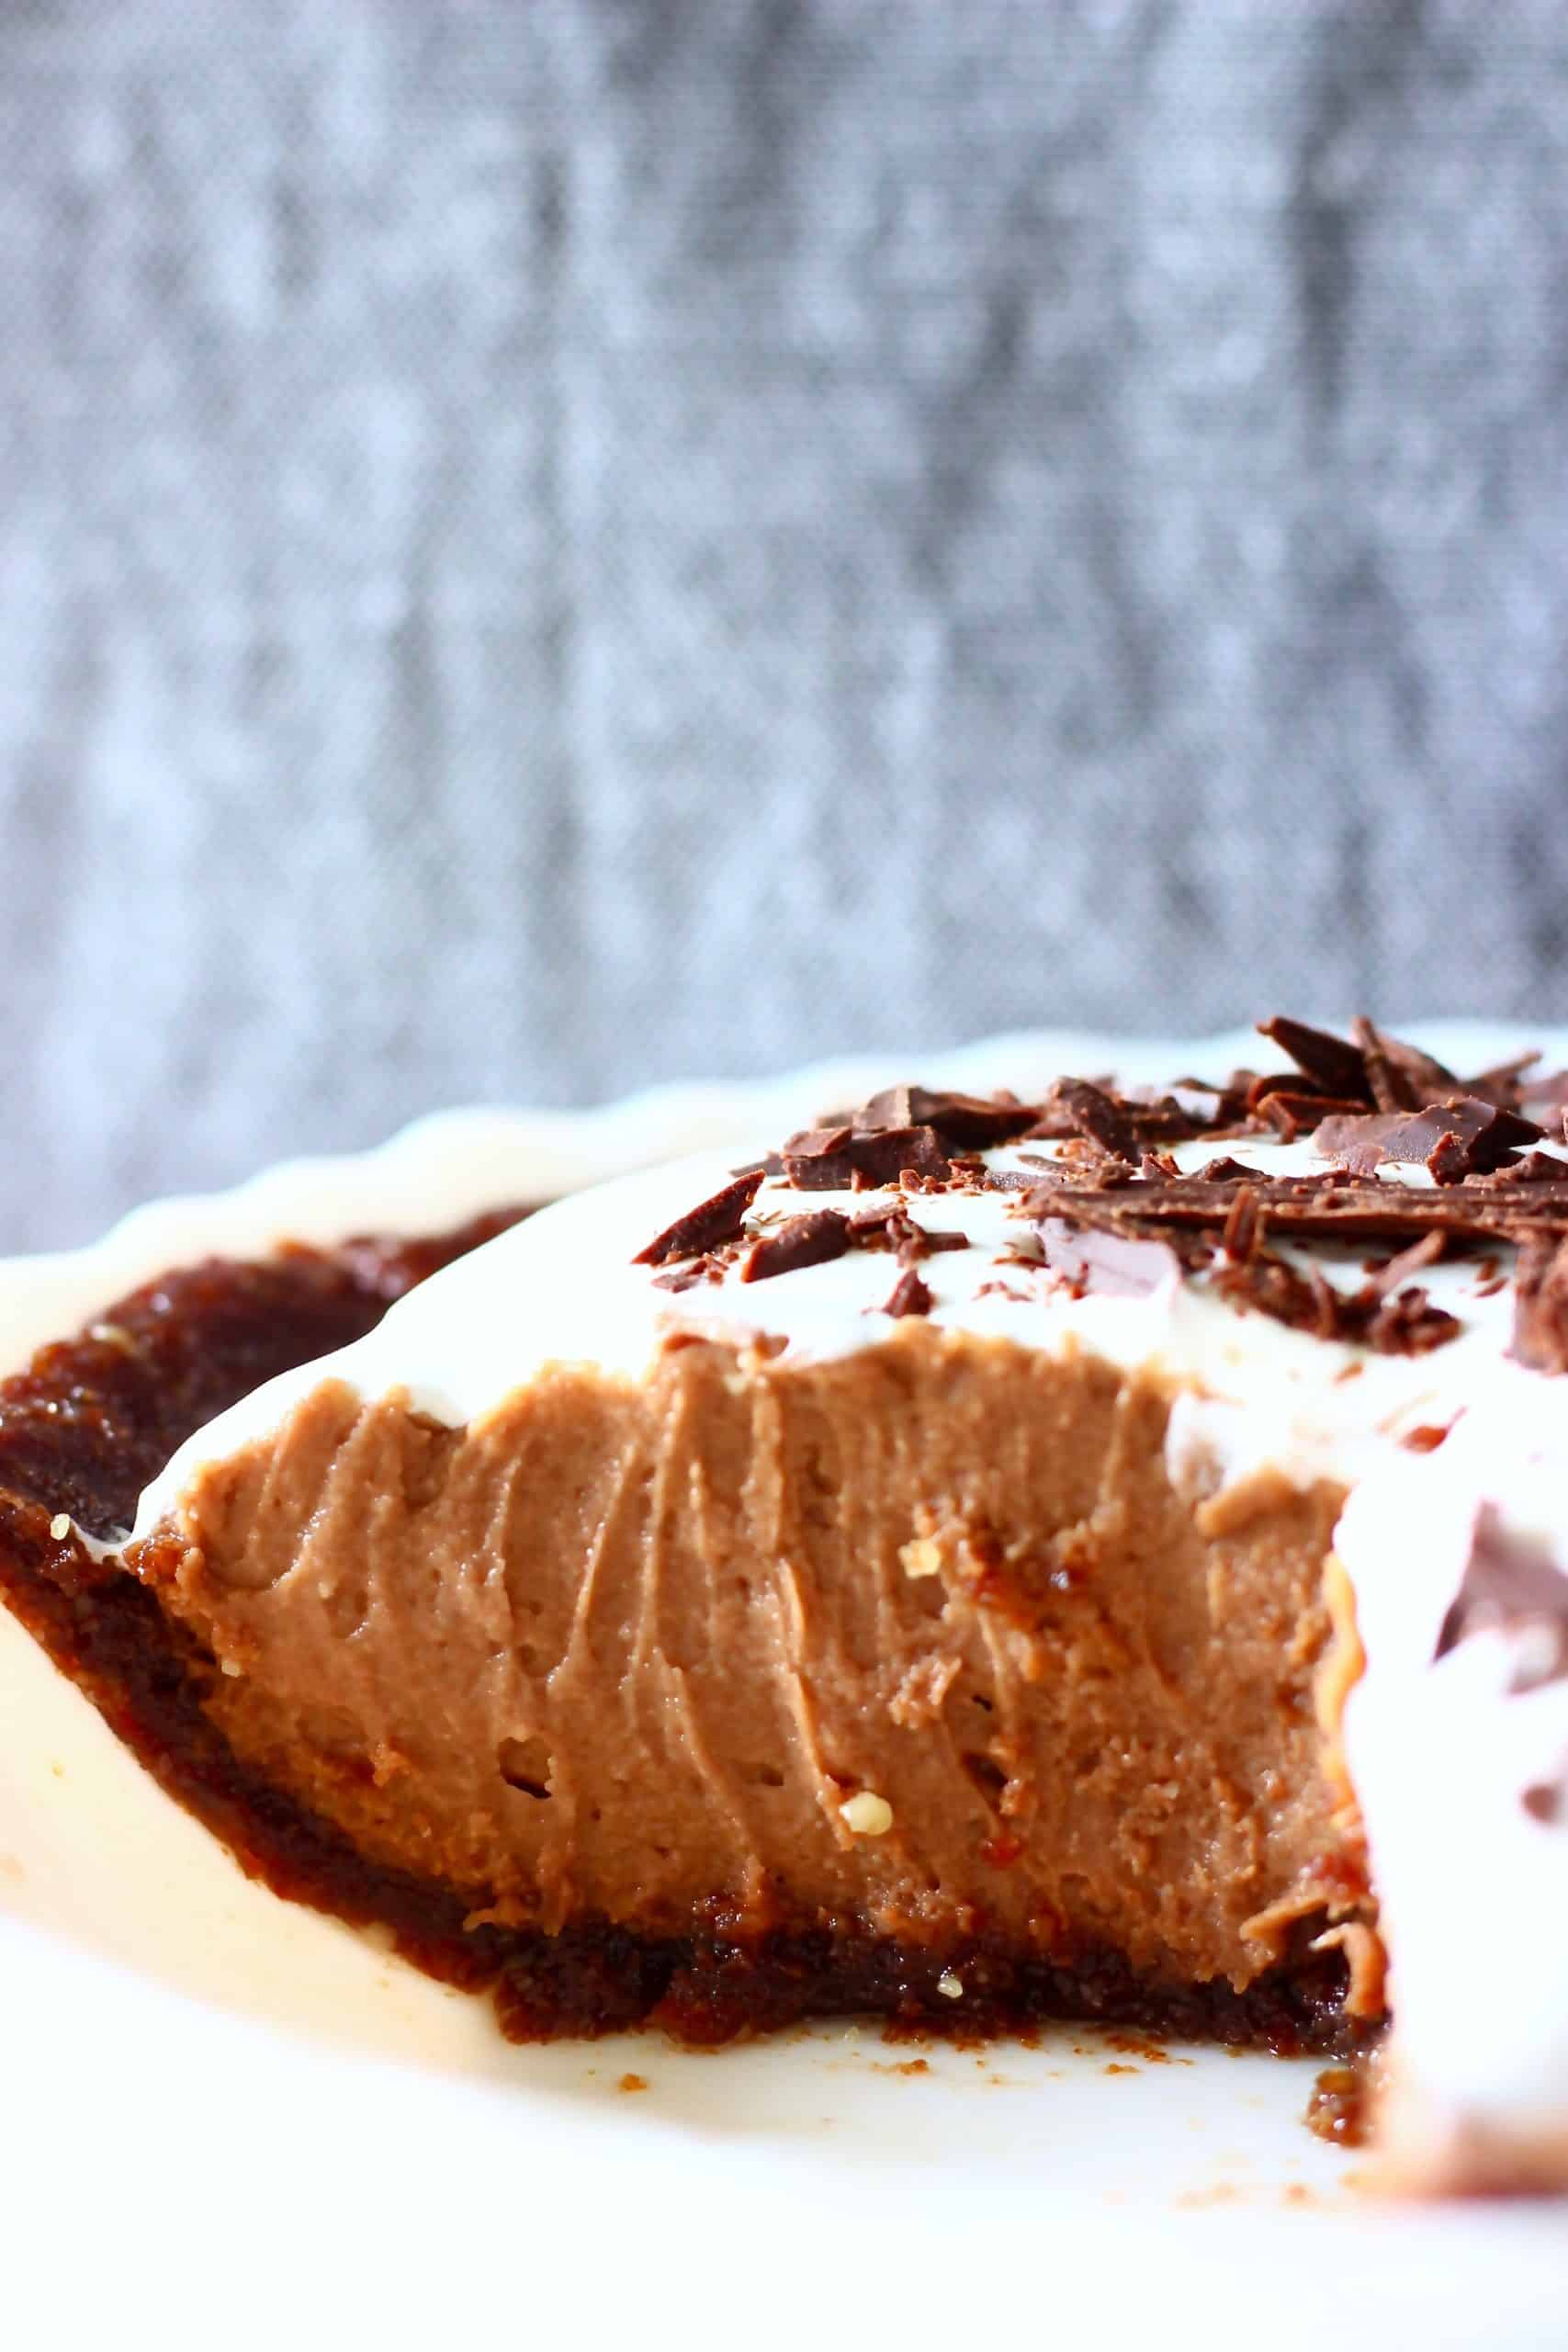 Vegan chocolate pie with chocolate pie crust, chocolate filling and white cream in a pie dish